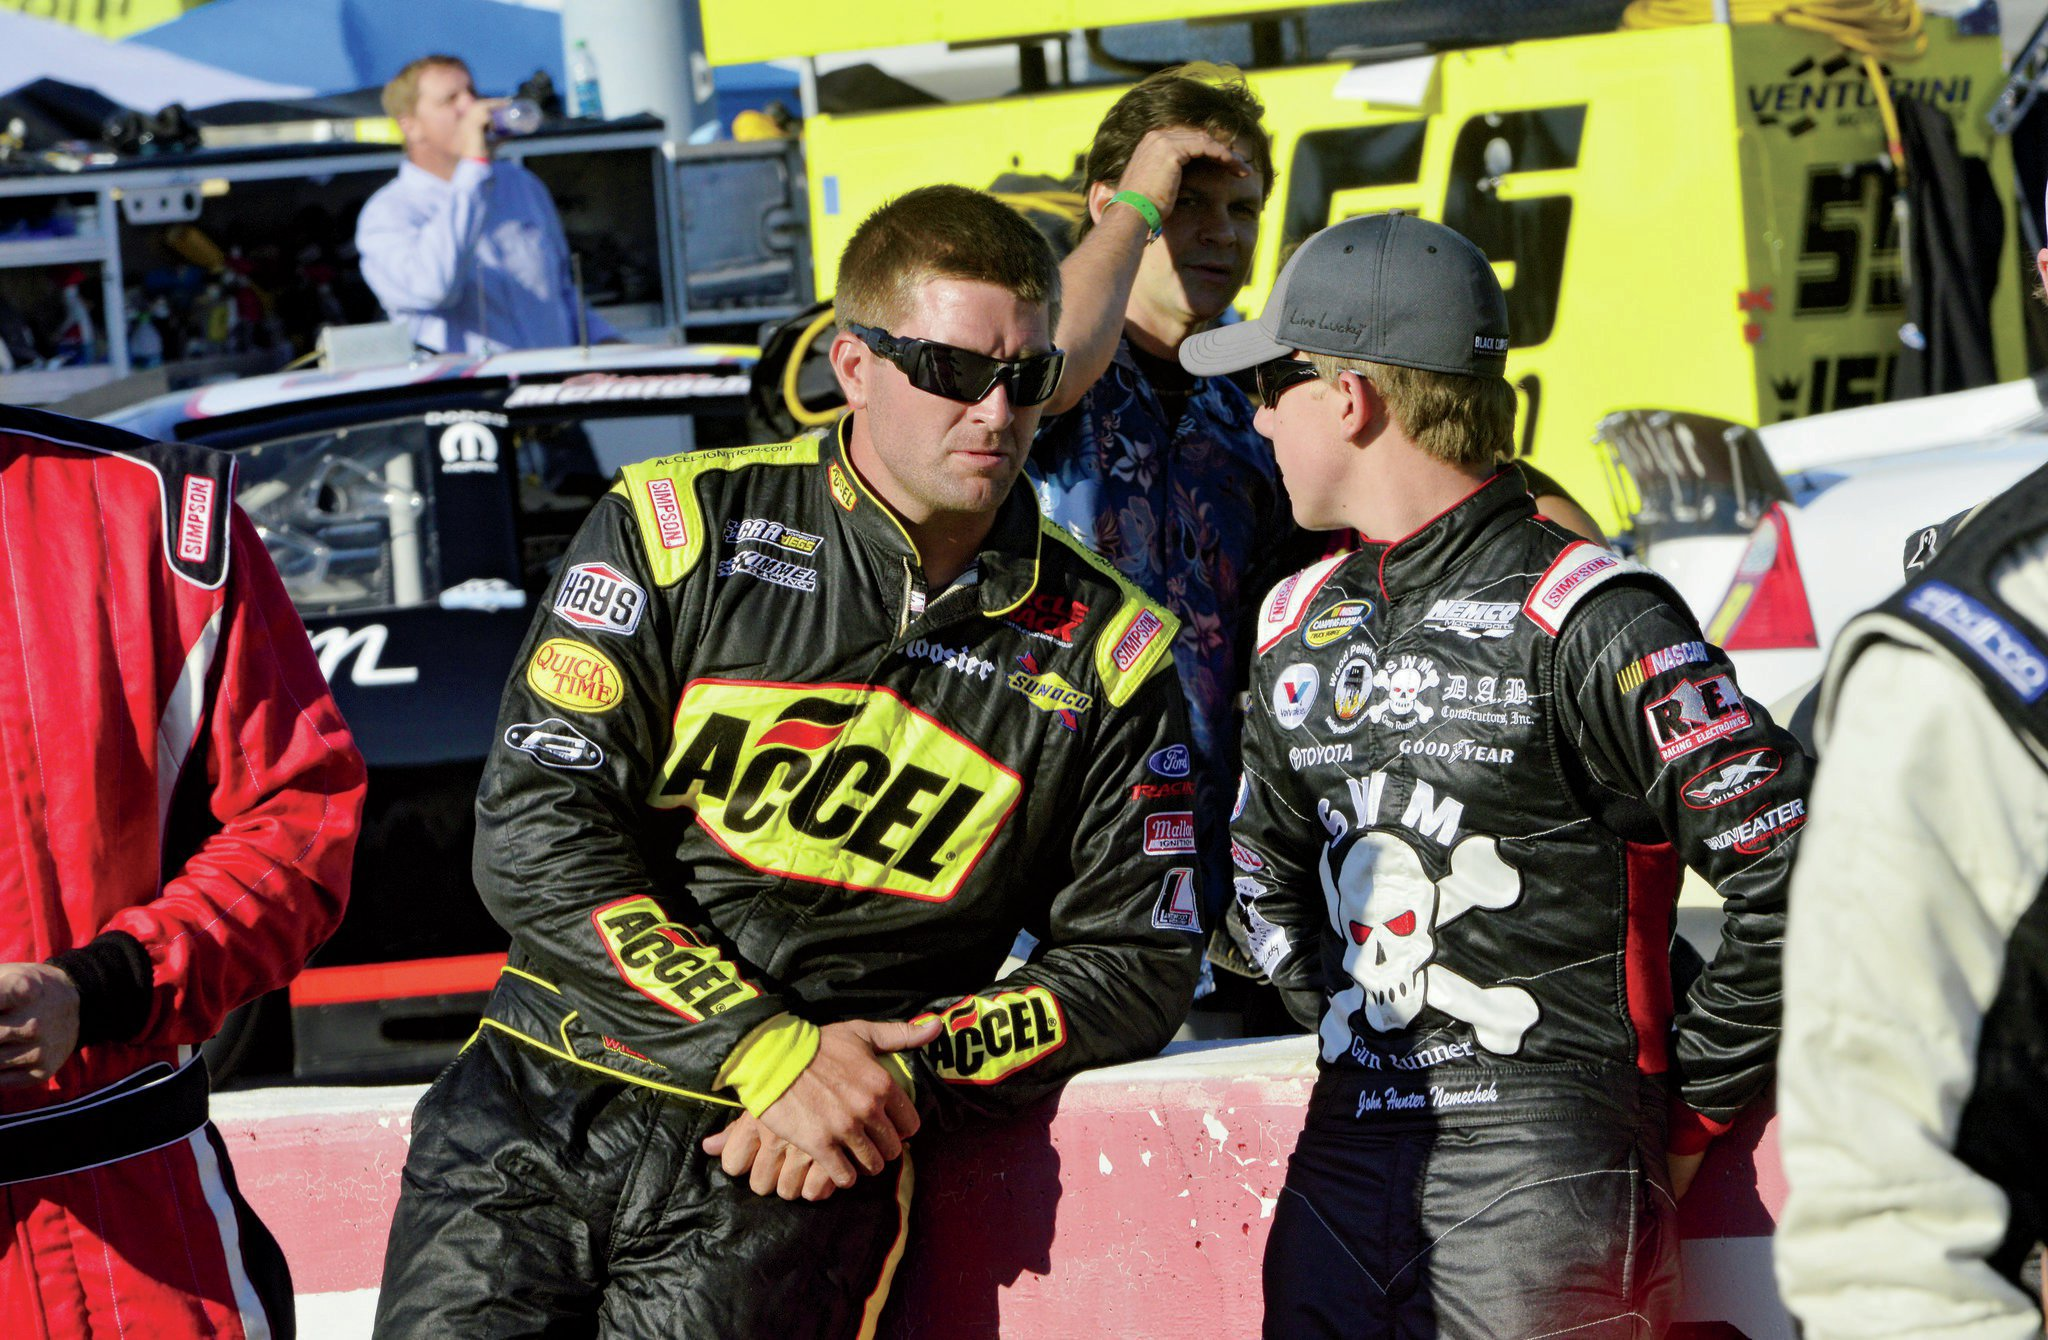 Prior to driver introductions, Will talks with John Hunter Nemechek. The 17-year-old son of Joe Nemechek would wage a fierce battle with Kyle Busch over the last 43 laps of the race for the win. At the line it was the veteran besting the youngster by a scant 0.024 seconds.